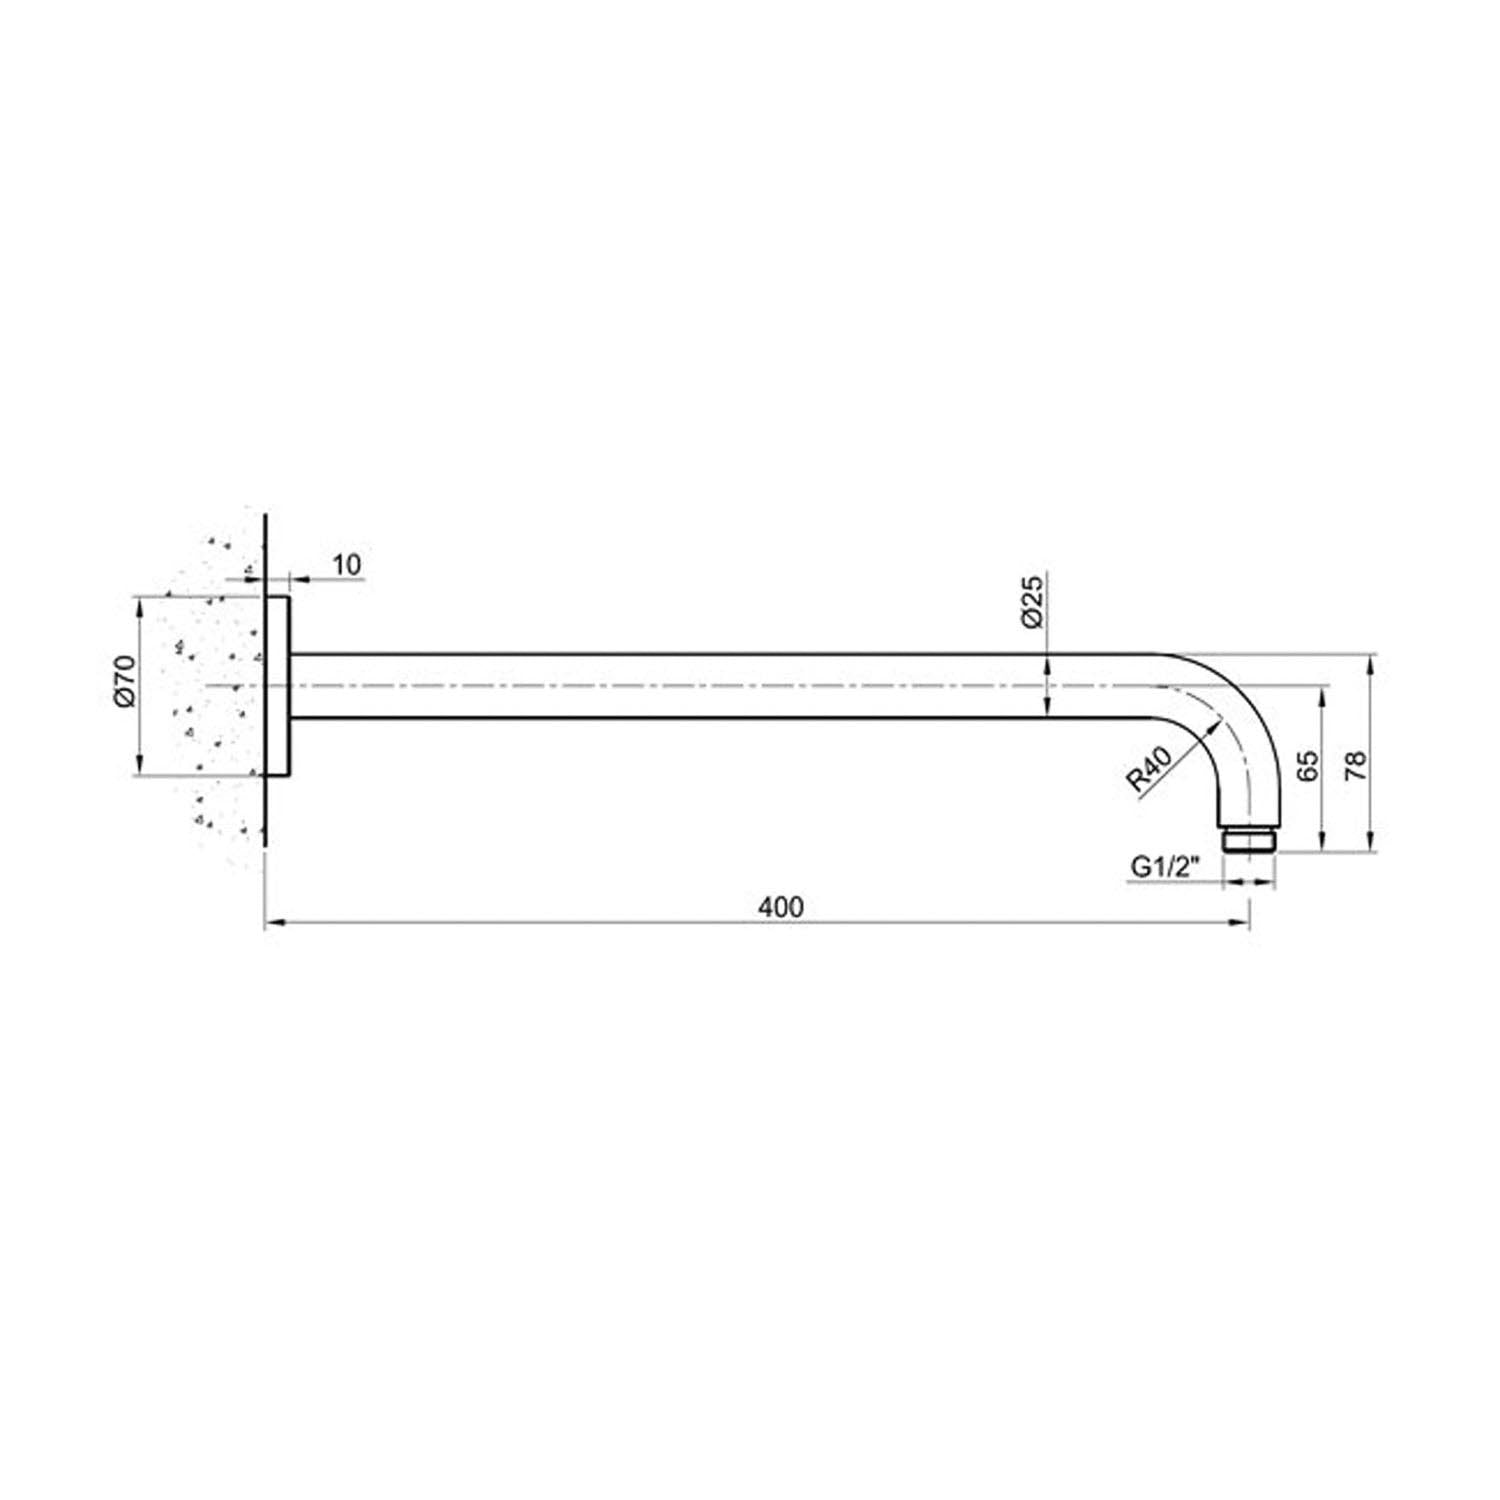 400mm wall mounted Libero Shower Arm with a satin steel finish dimensional drawing